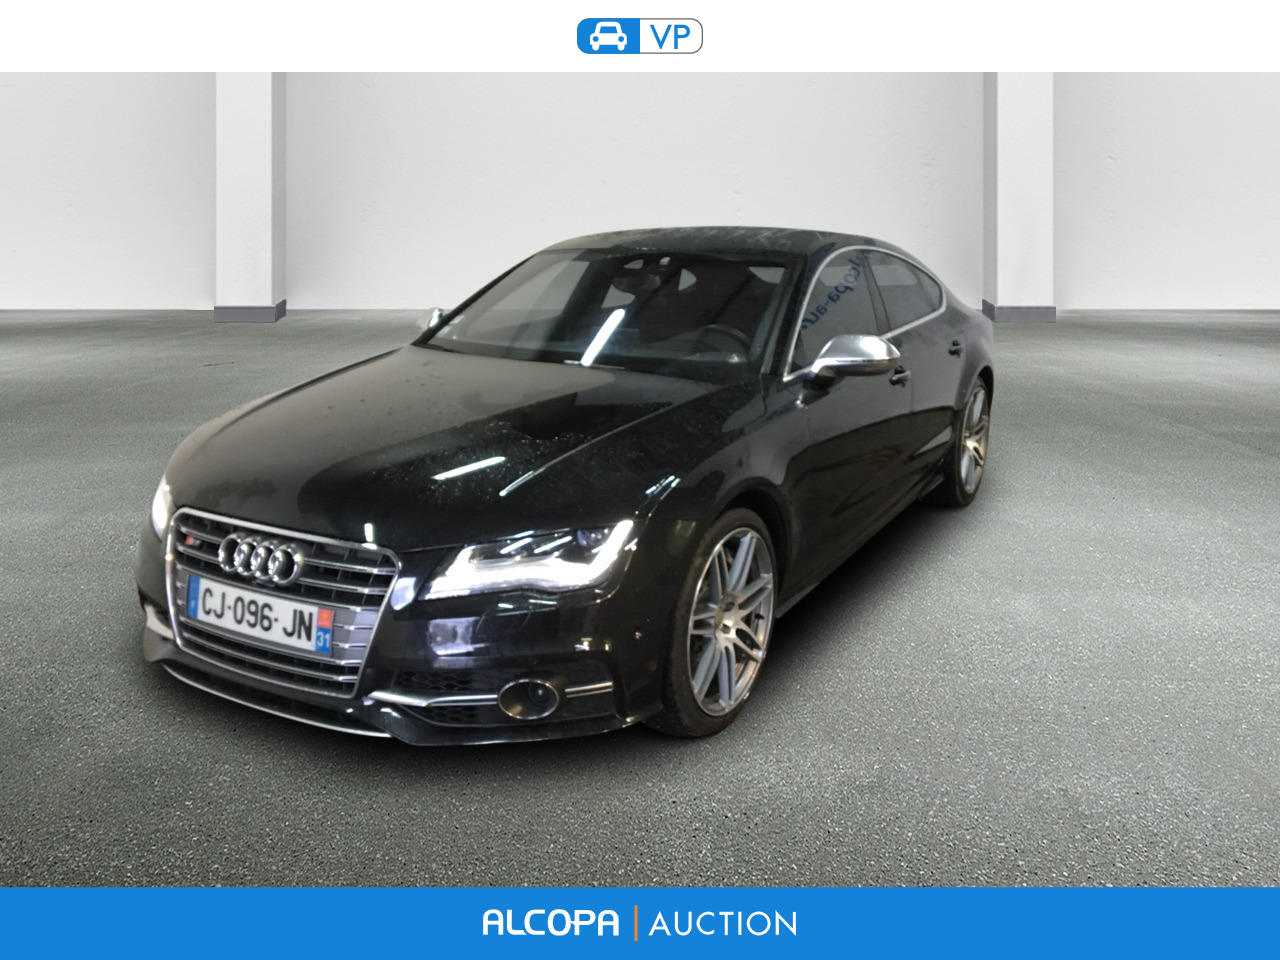 audi s7 s7 sportback 4 0 v8 tfsi 420ch quattro s tronic 7 tours alcopa auction. Black Bedroom Furniture Sets. Home Design Ideas